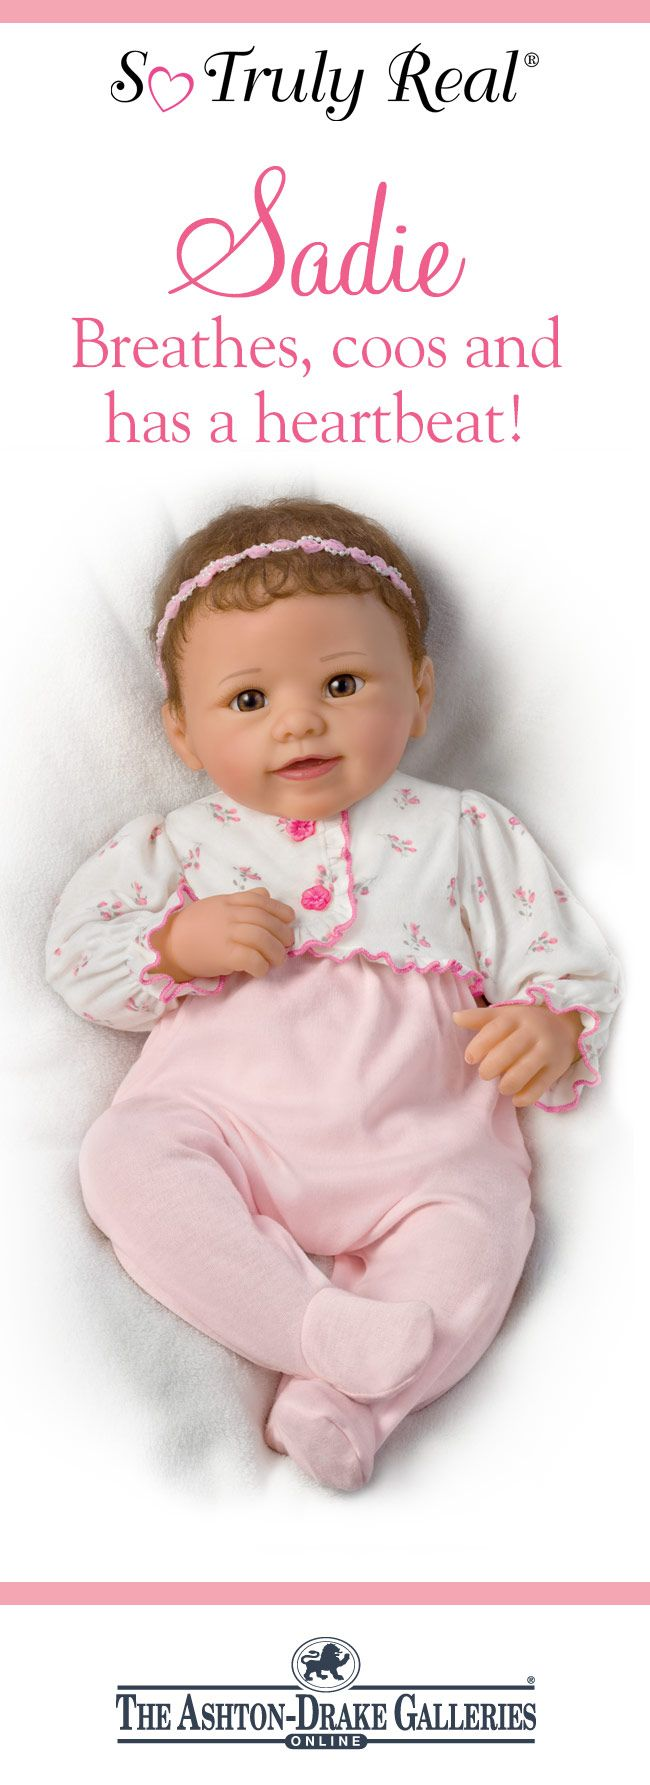 You're sure to fall in love with the Sweet Sadie Baby Doll the moment she responds to your touch! She's lovingly handcrafted of irresistibly soft RealTouch vinyl and she breathes, coos and has a heartbeat to create lifelike interaction that melts hearts. Don't wait to make her yours - Shop Now!